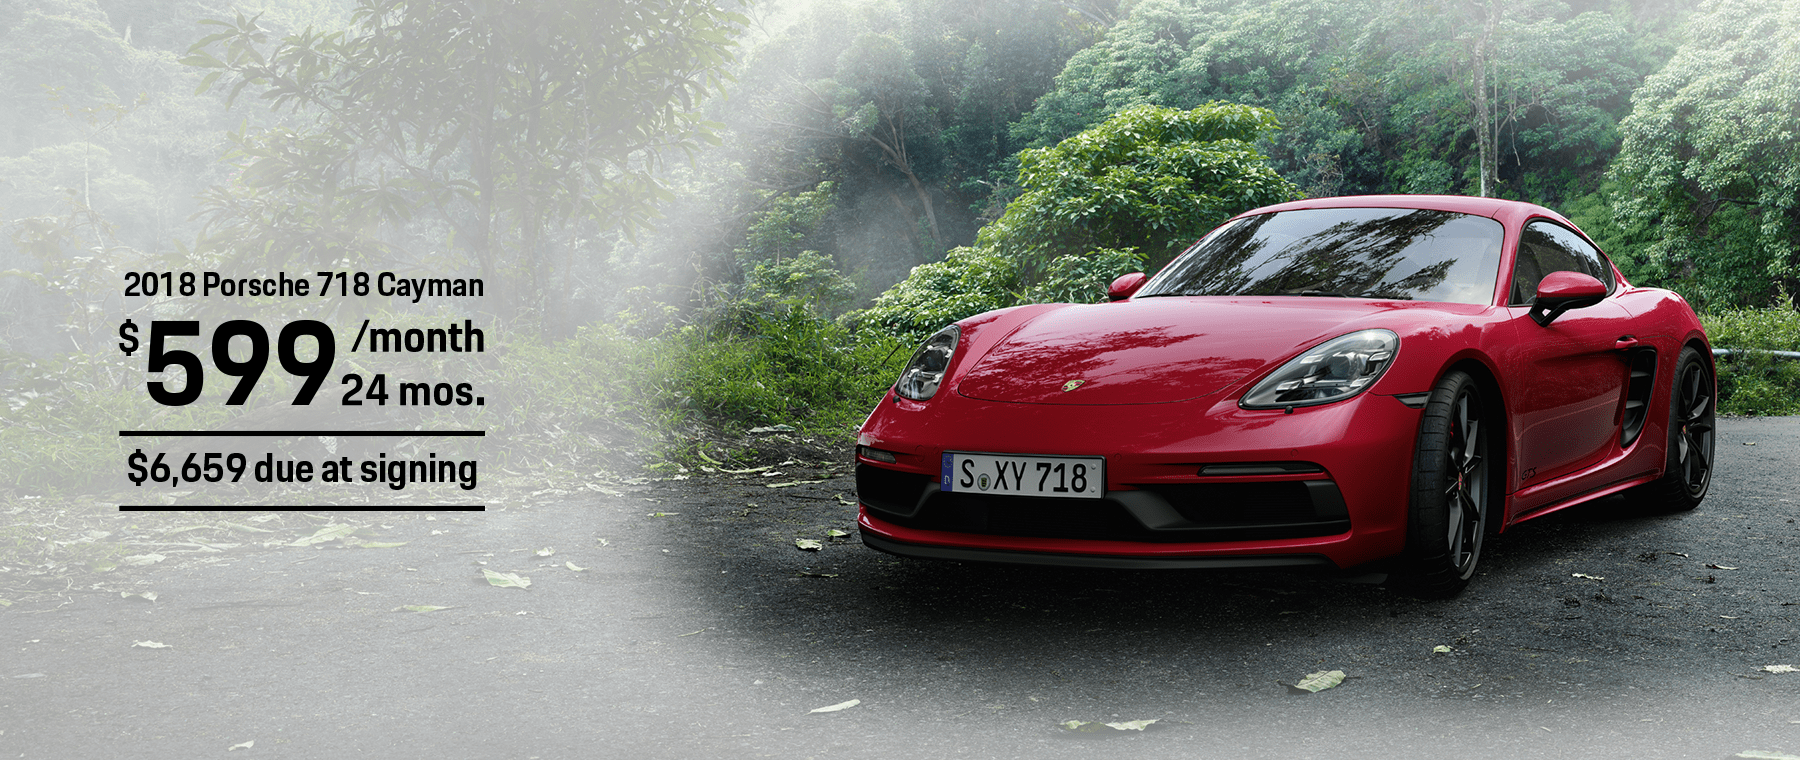 Porsche 718 Cayman Lease Offer